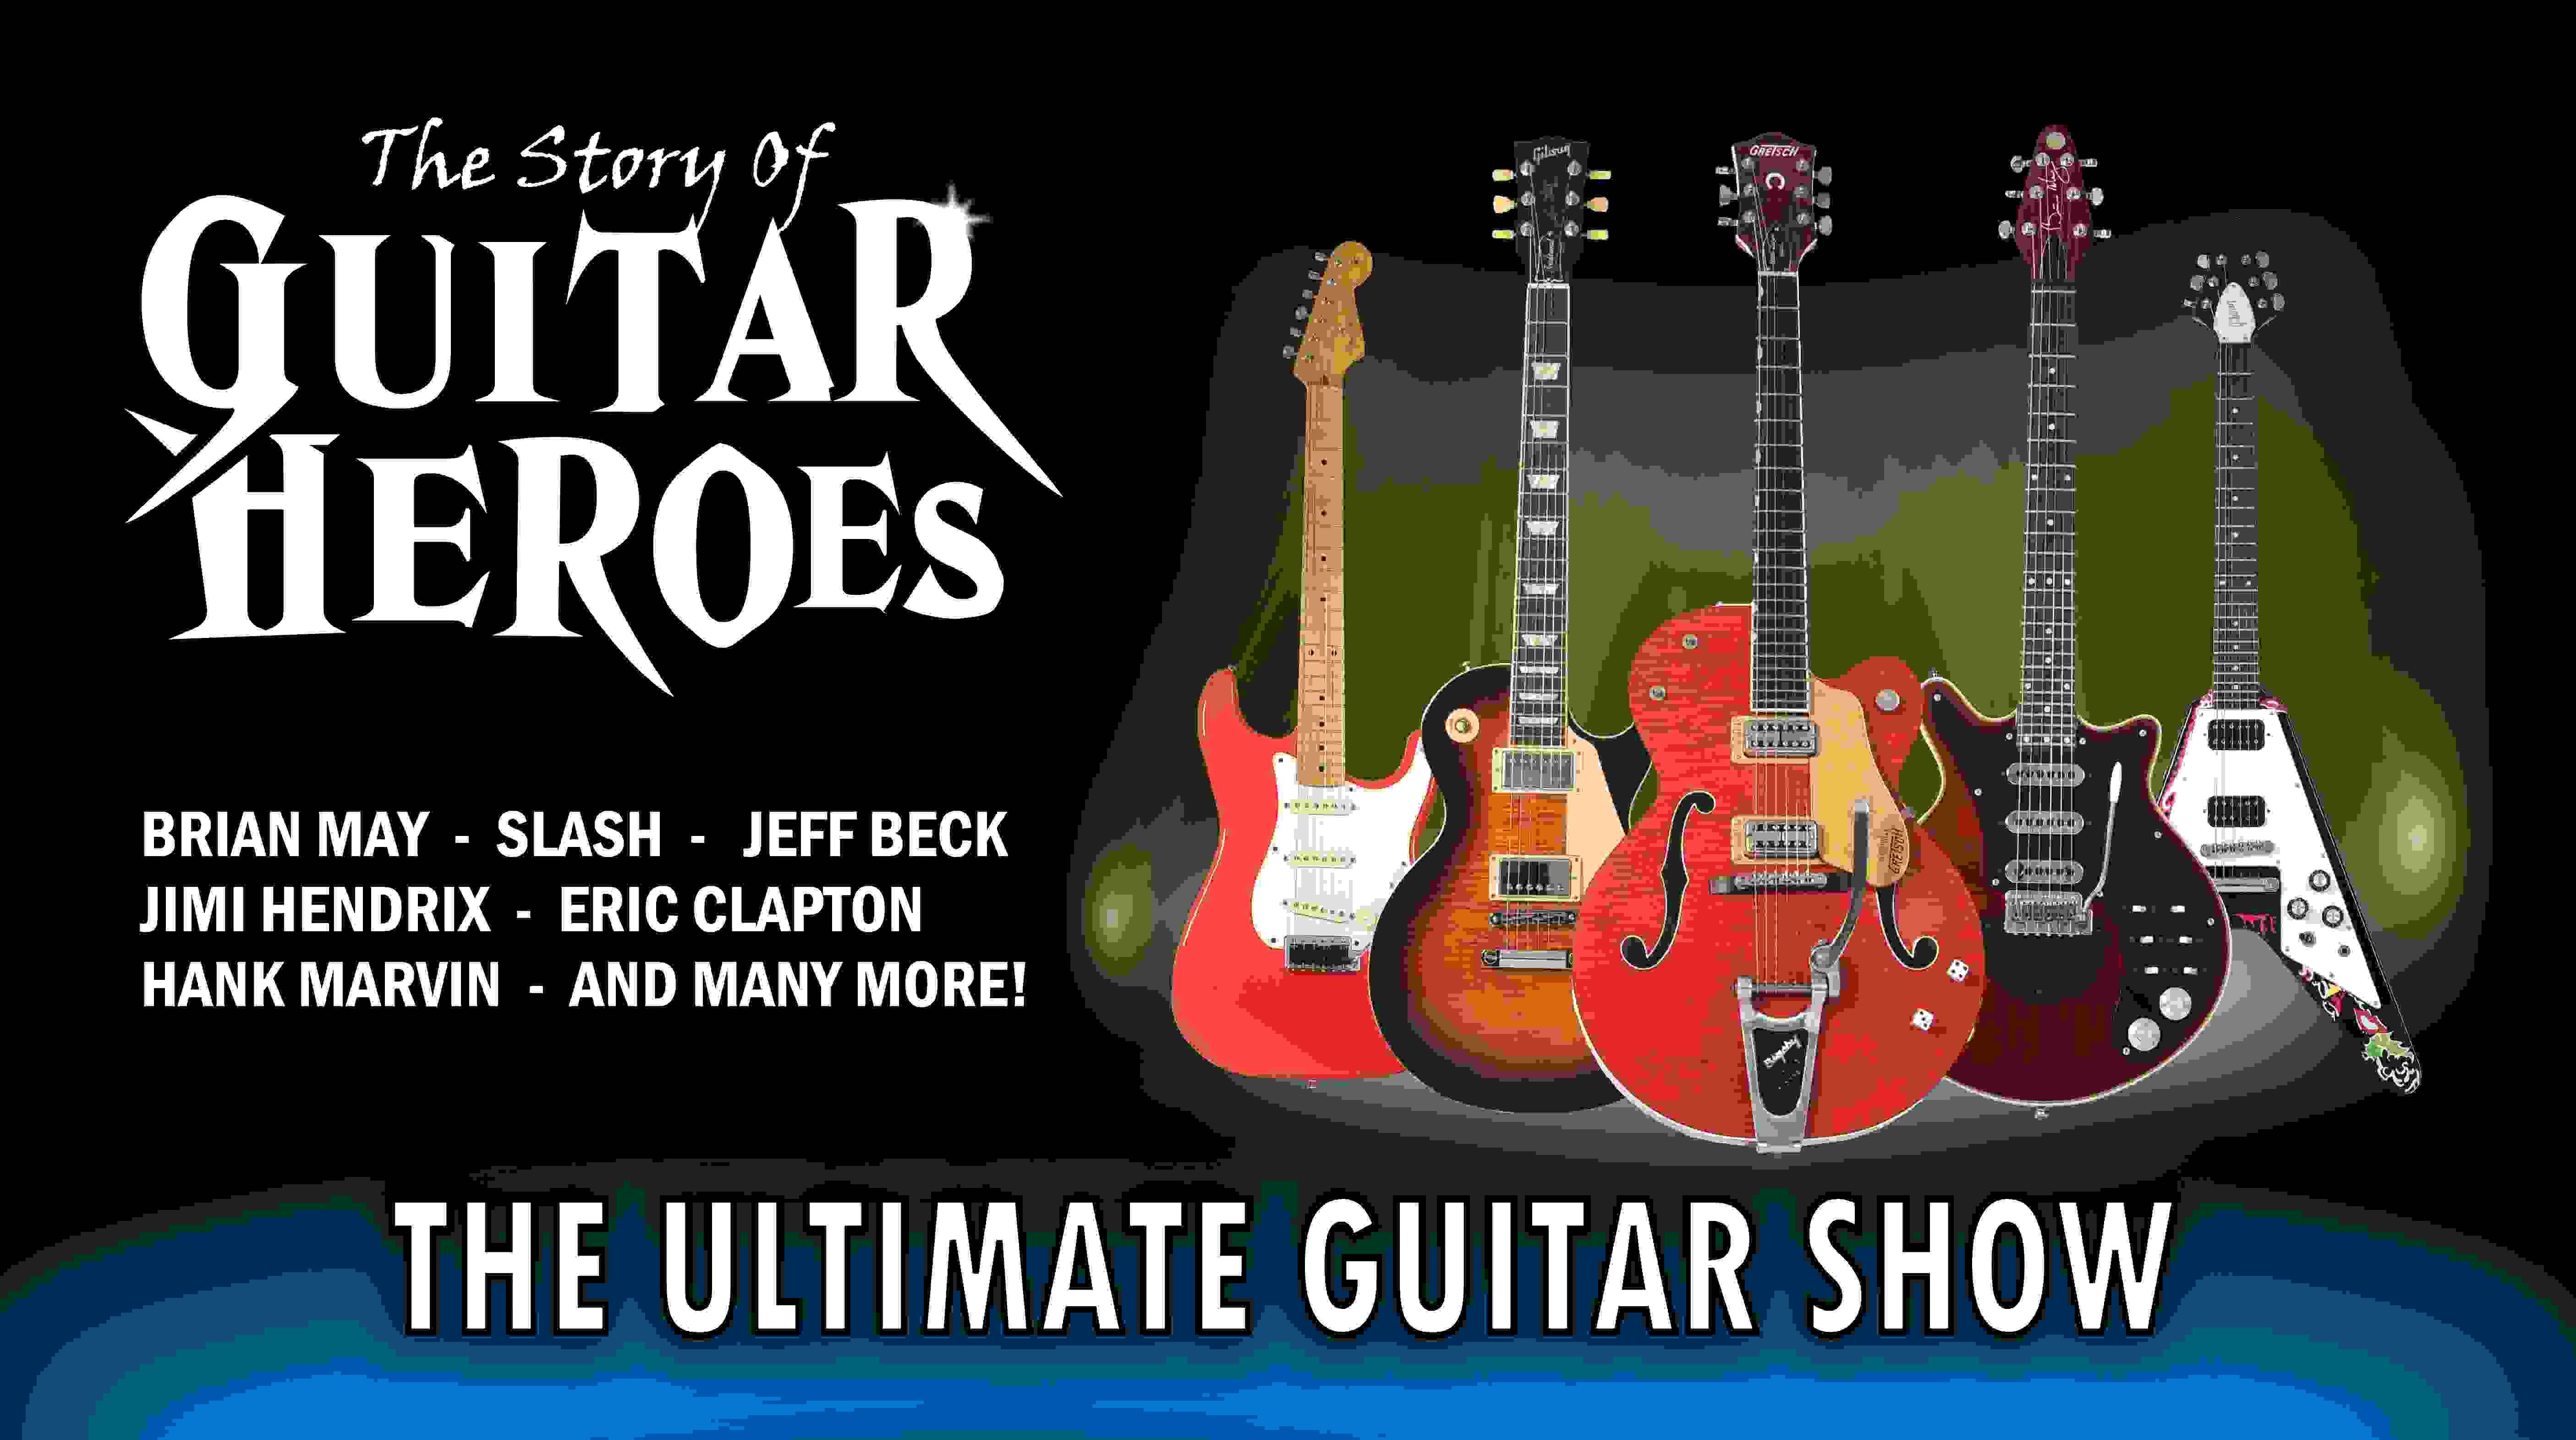 The Story of Guitar Heroes 2019